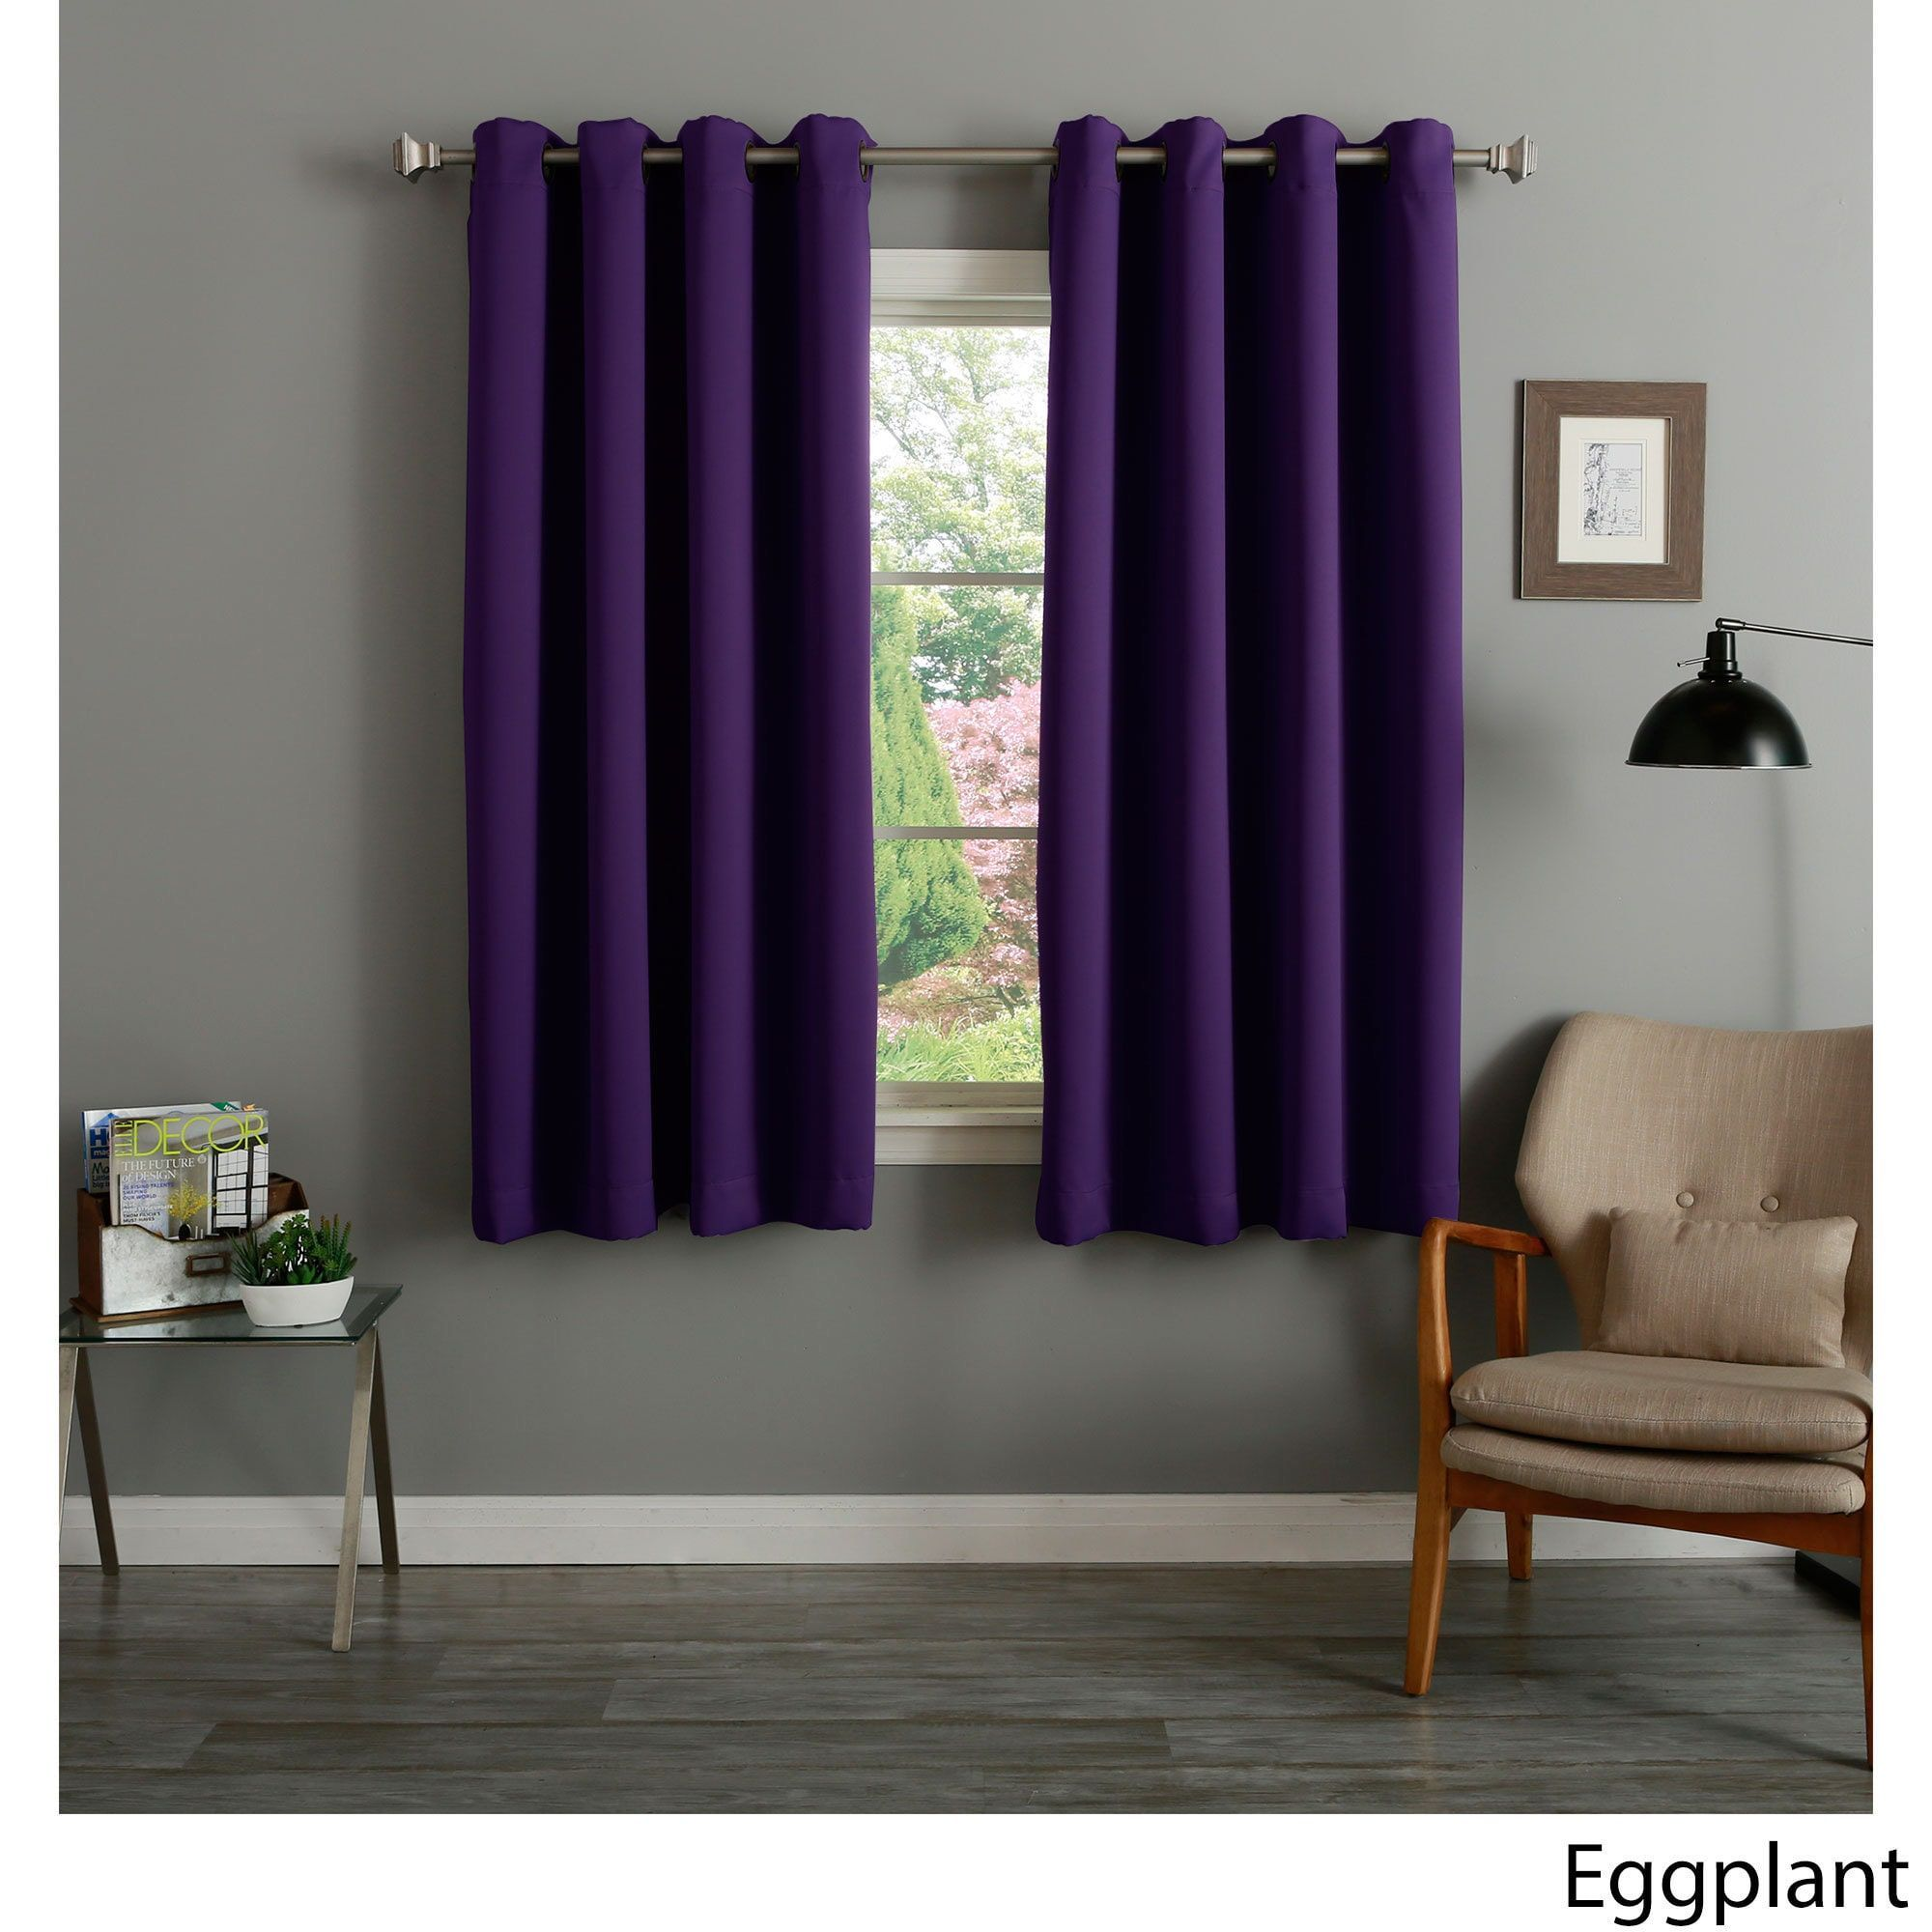 curtains drapes modern blackout purple brief pin free fashion lining flower shipping quality or with curtain sheer